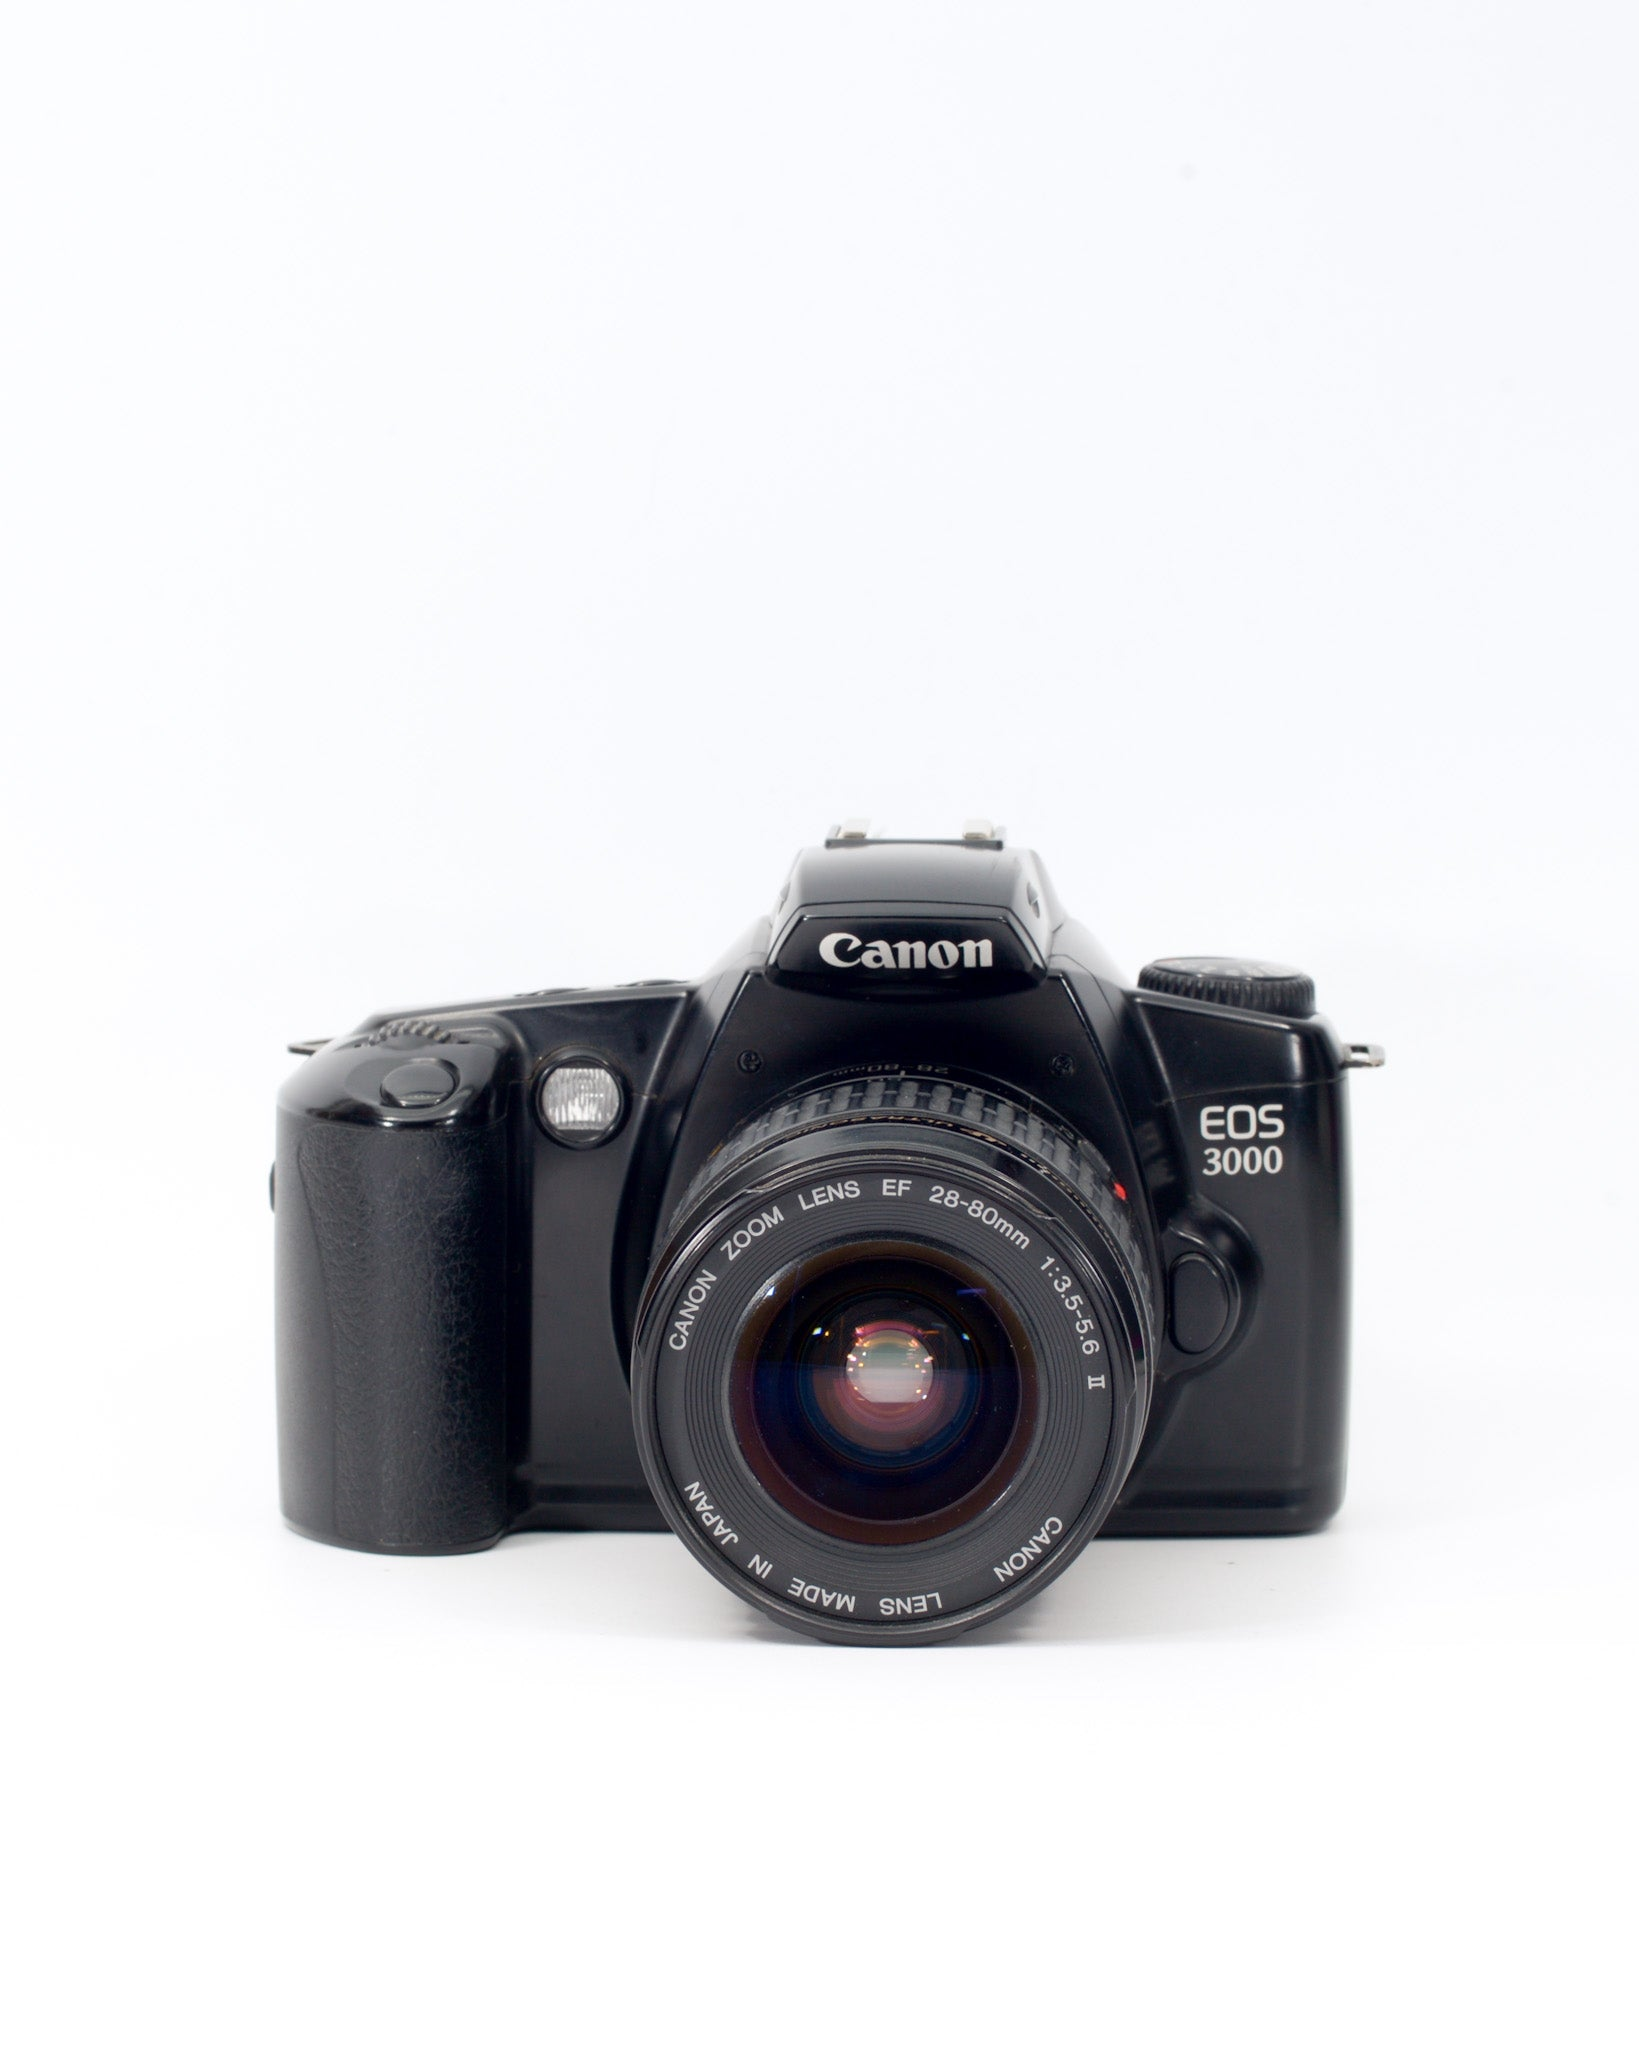 Canon EOS 3000 35mm SLR Film Camera with 28-80mm Lens